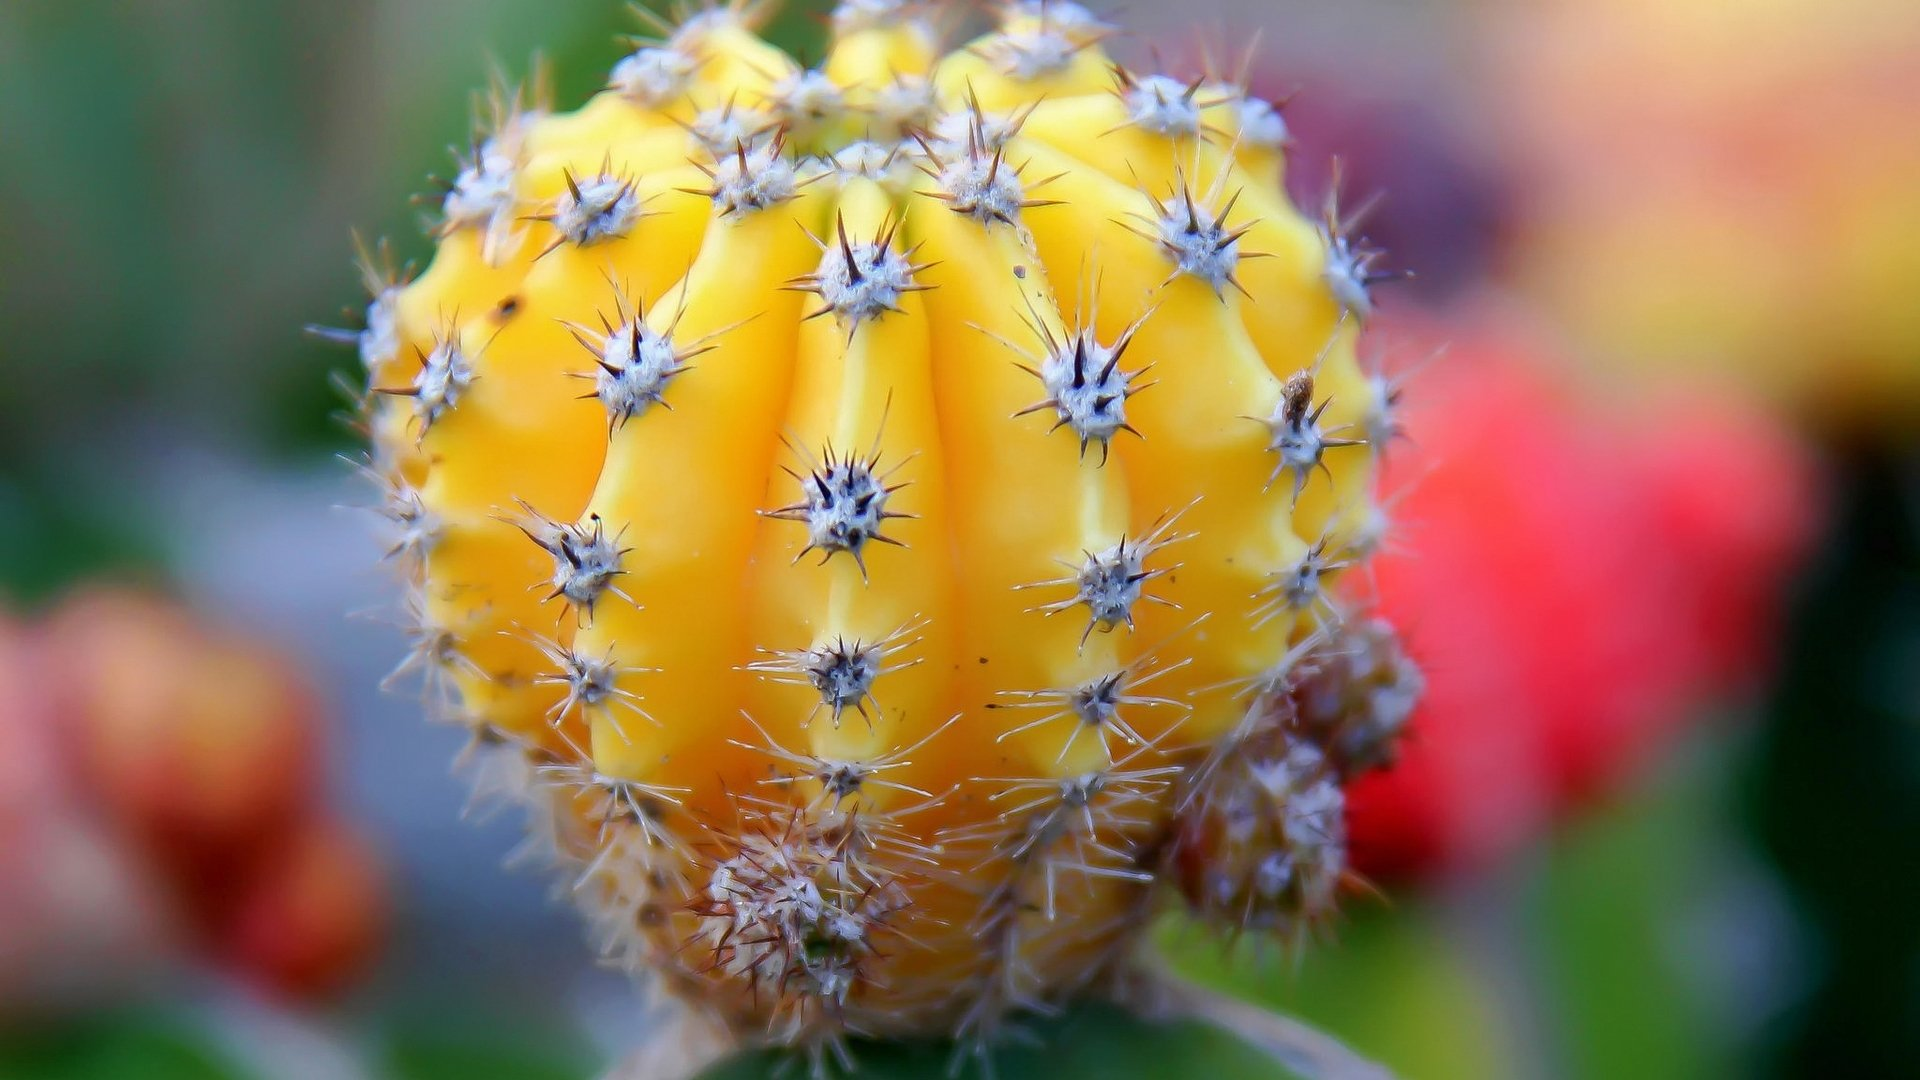 Cactus HD Wallpaper | Background Image | 1920x1080 | ID ...